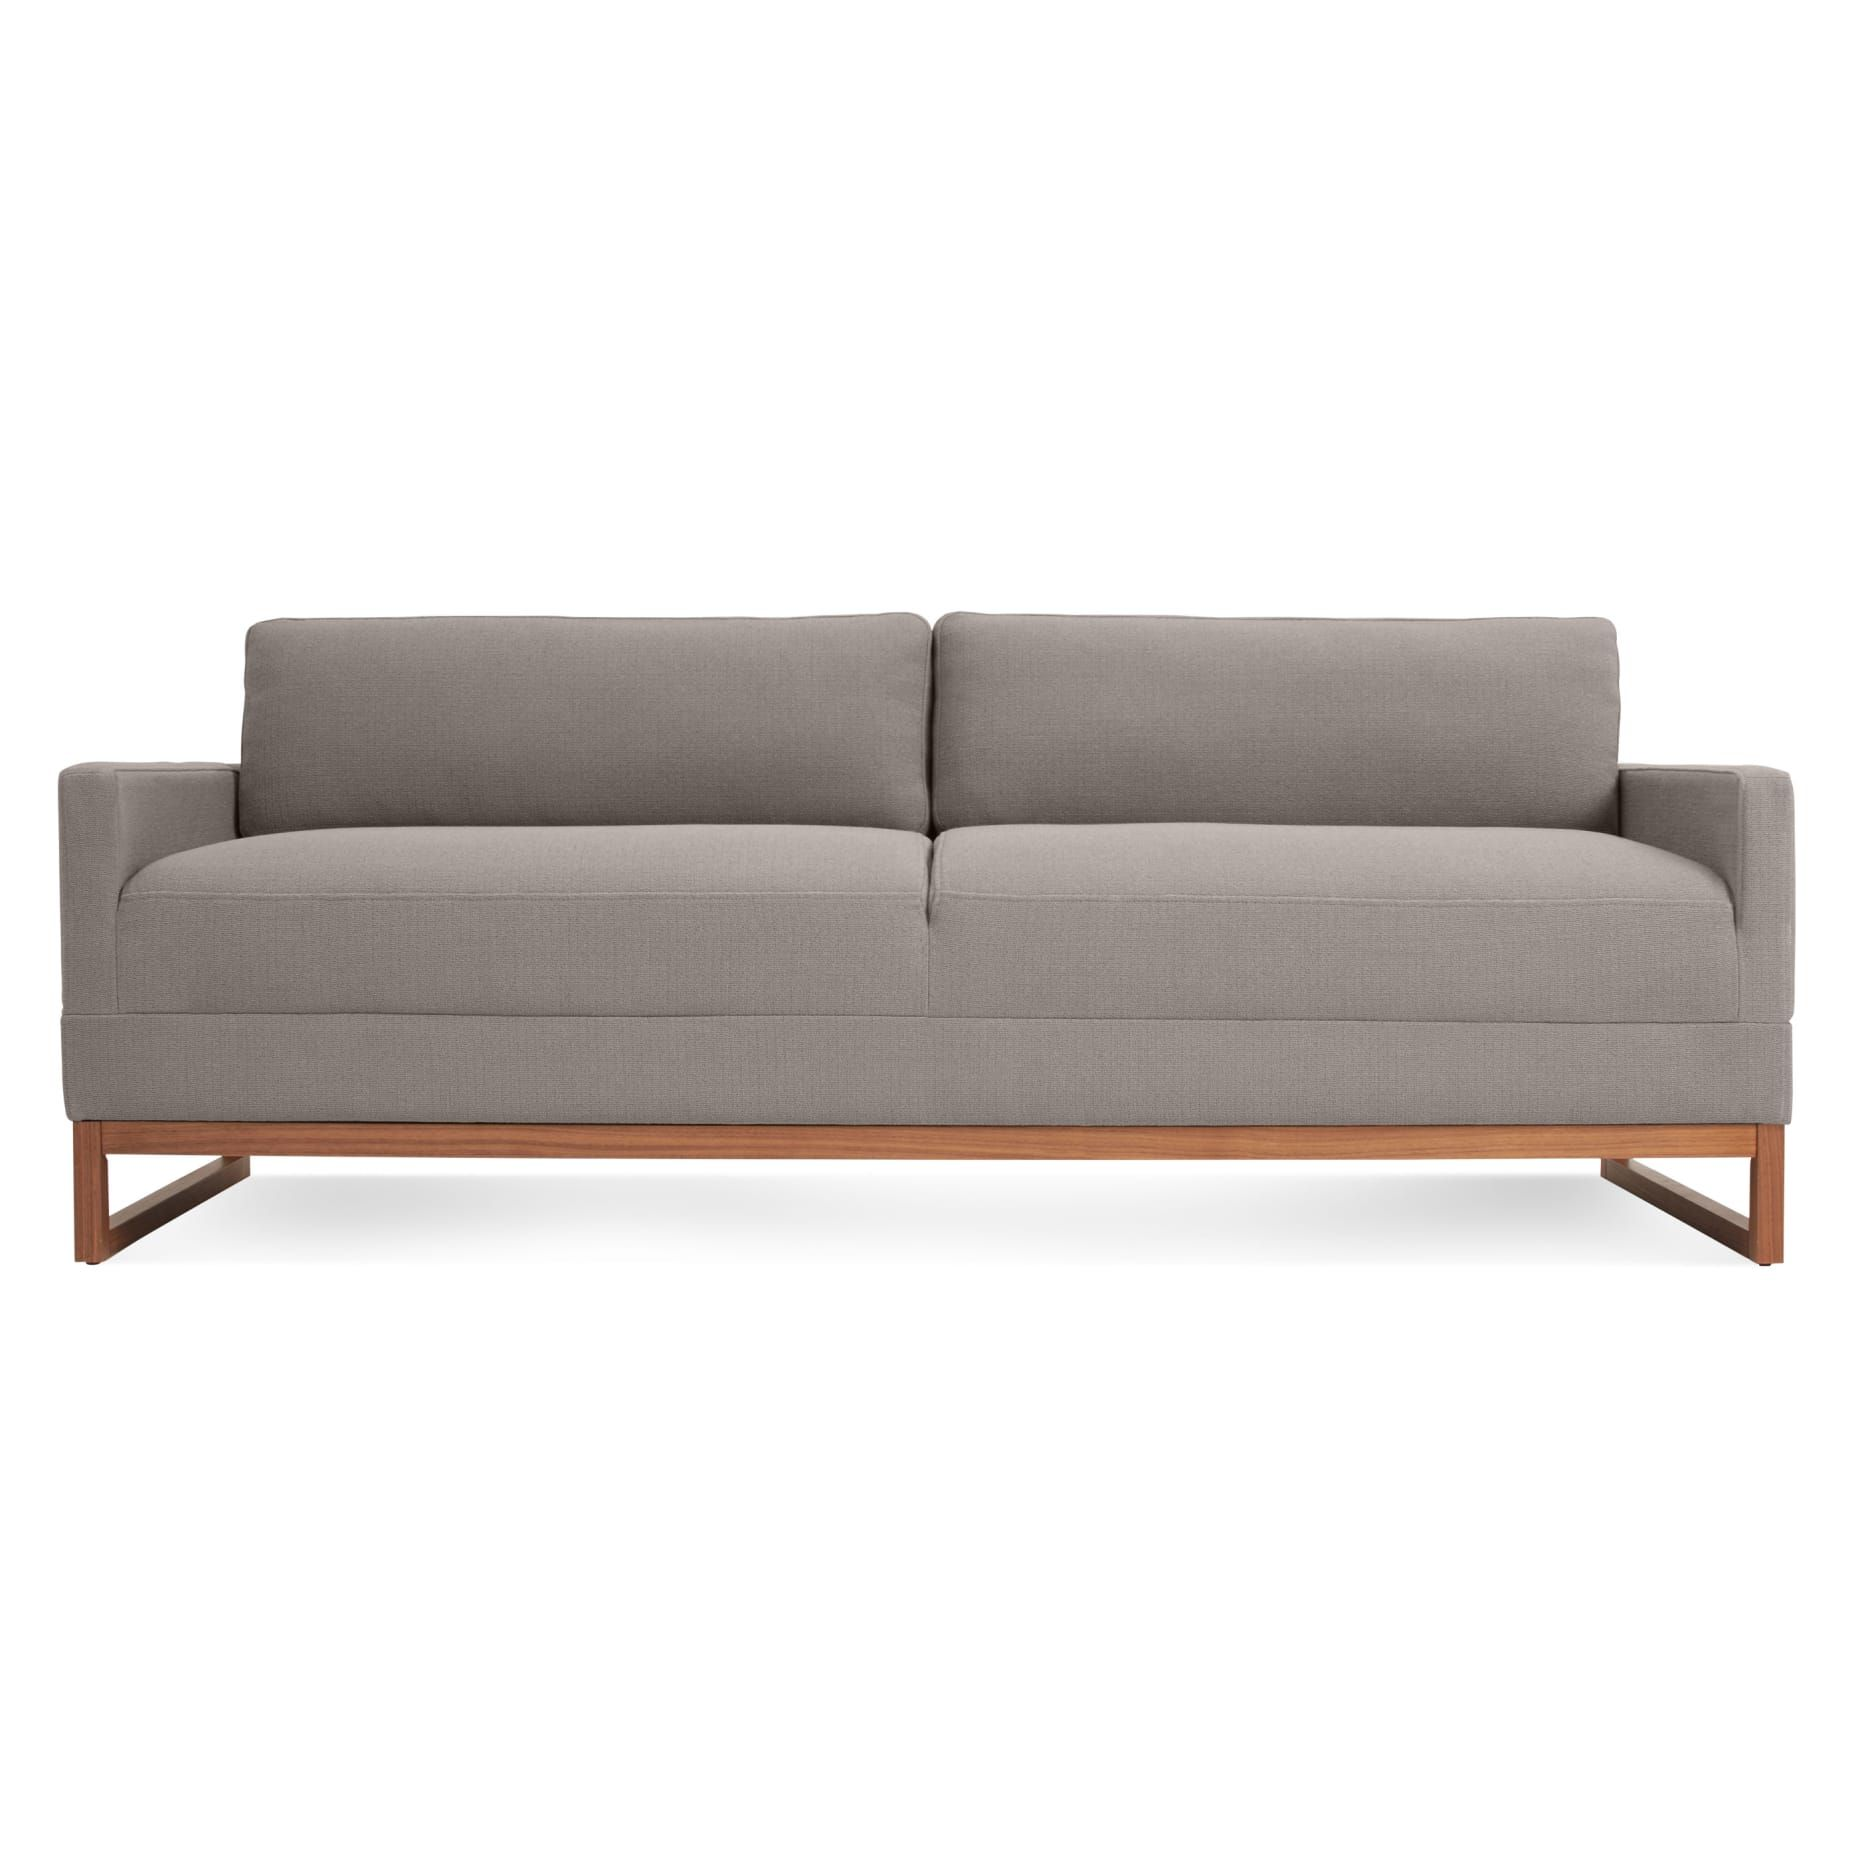 The Diplomat Sleeper Sofa, Packwood Charcoal | Schlafsofa ...